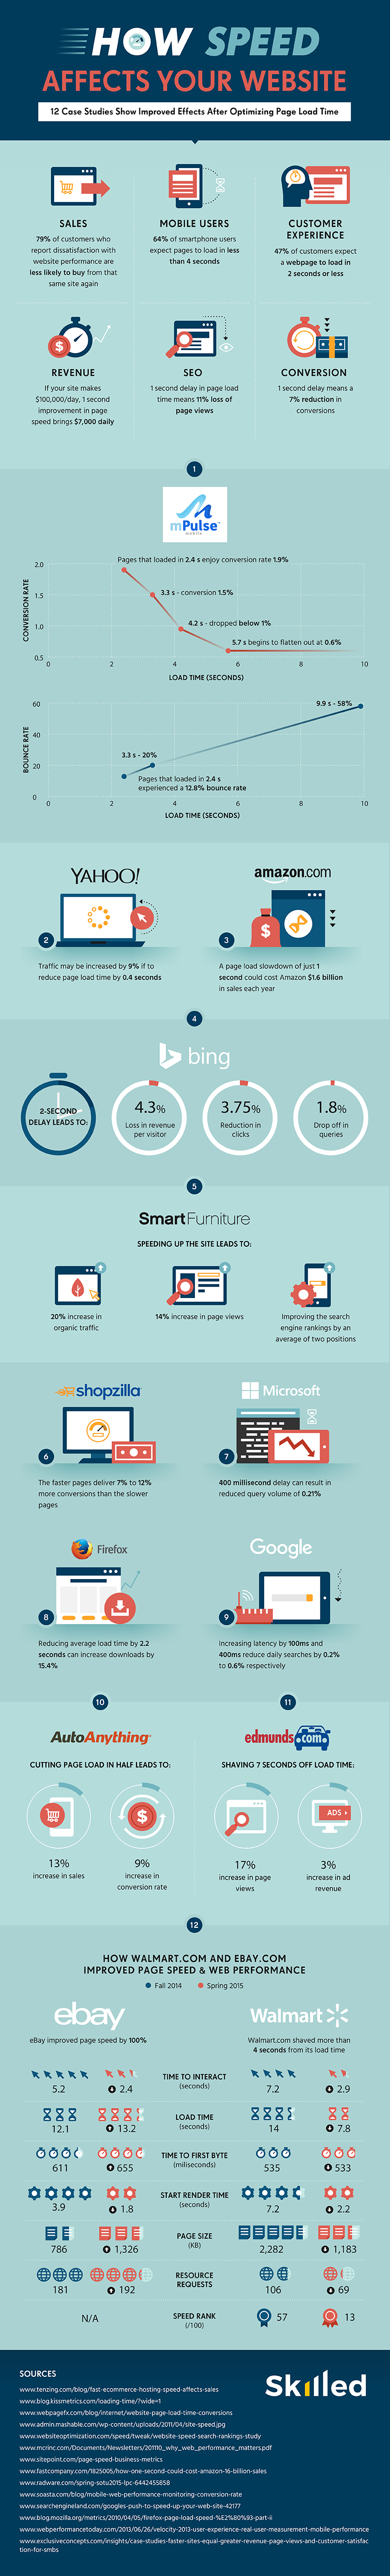 website-speed_infographic_skilled_final